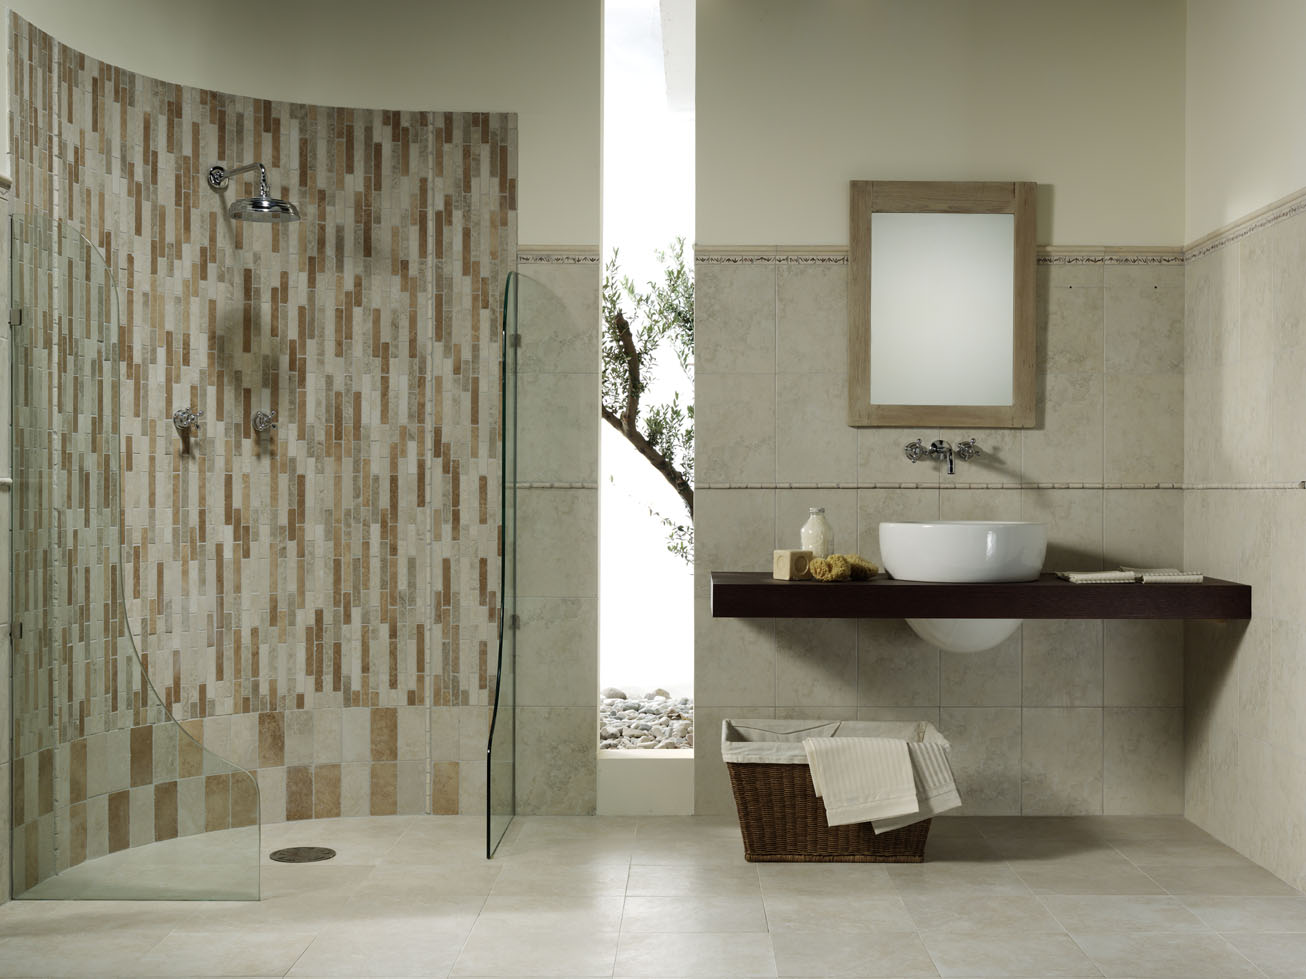 How to maintain porcelain ceramic tile